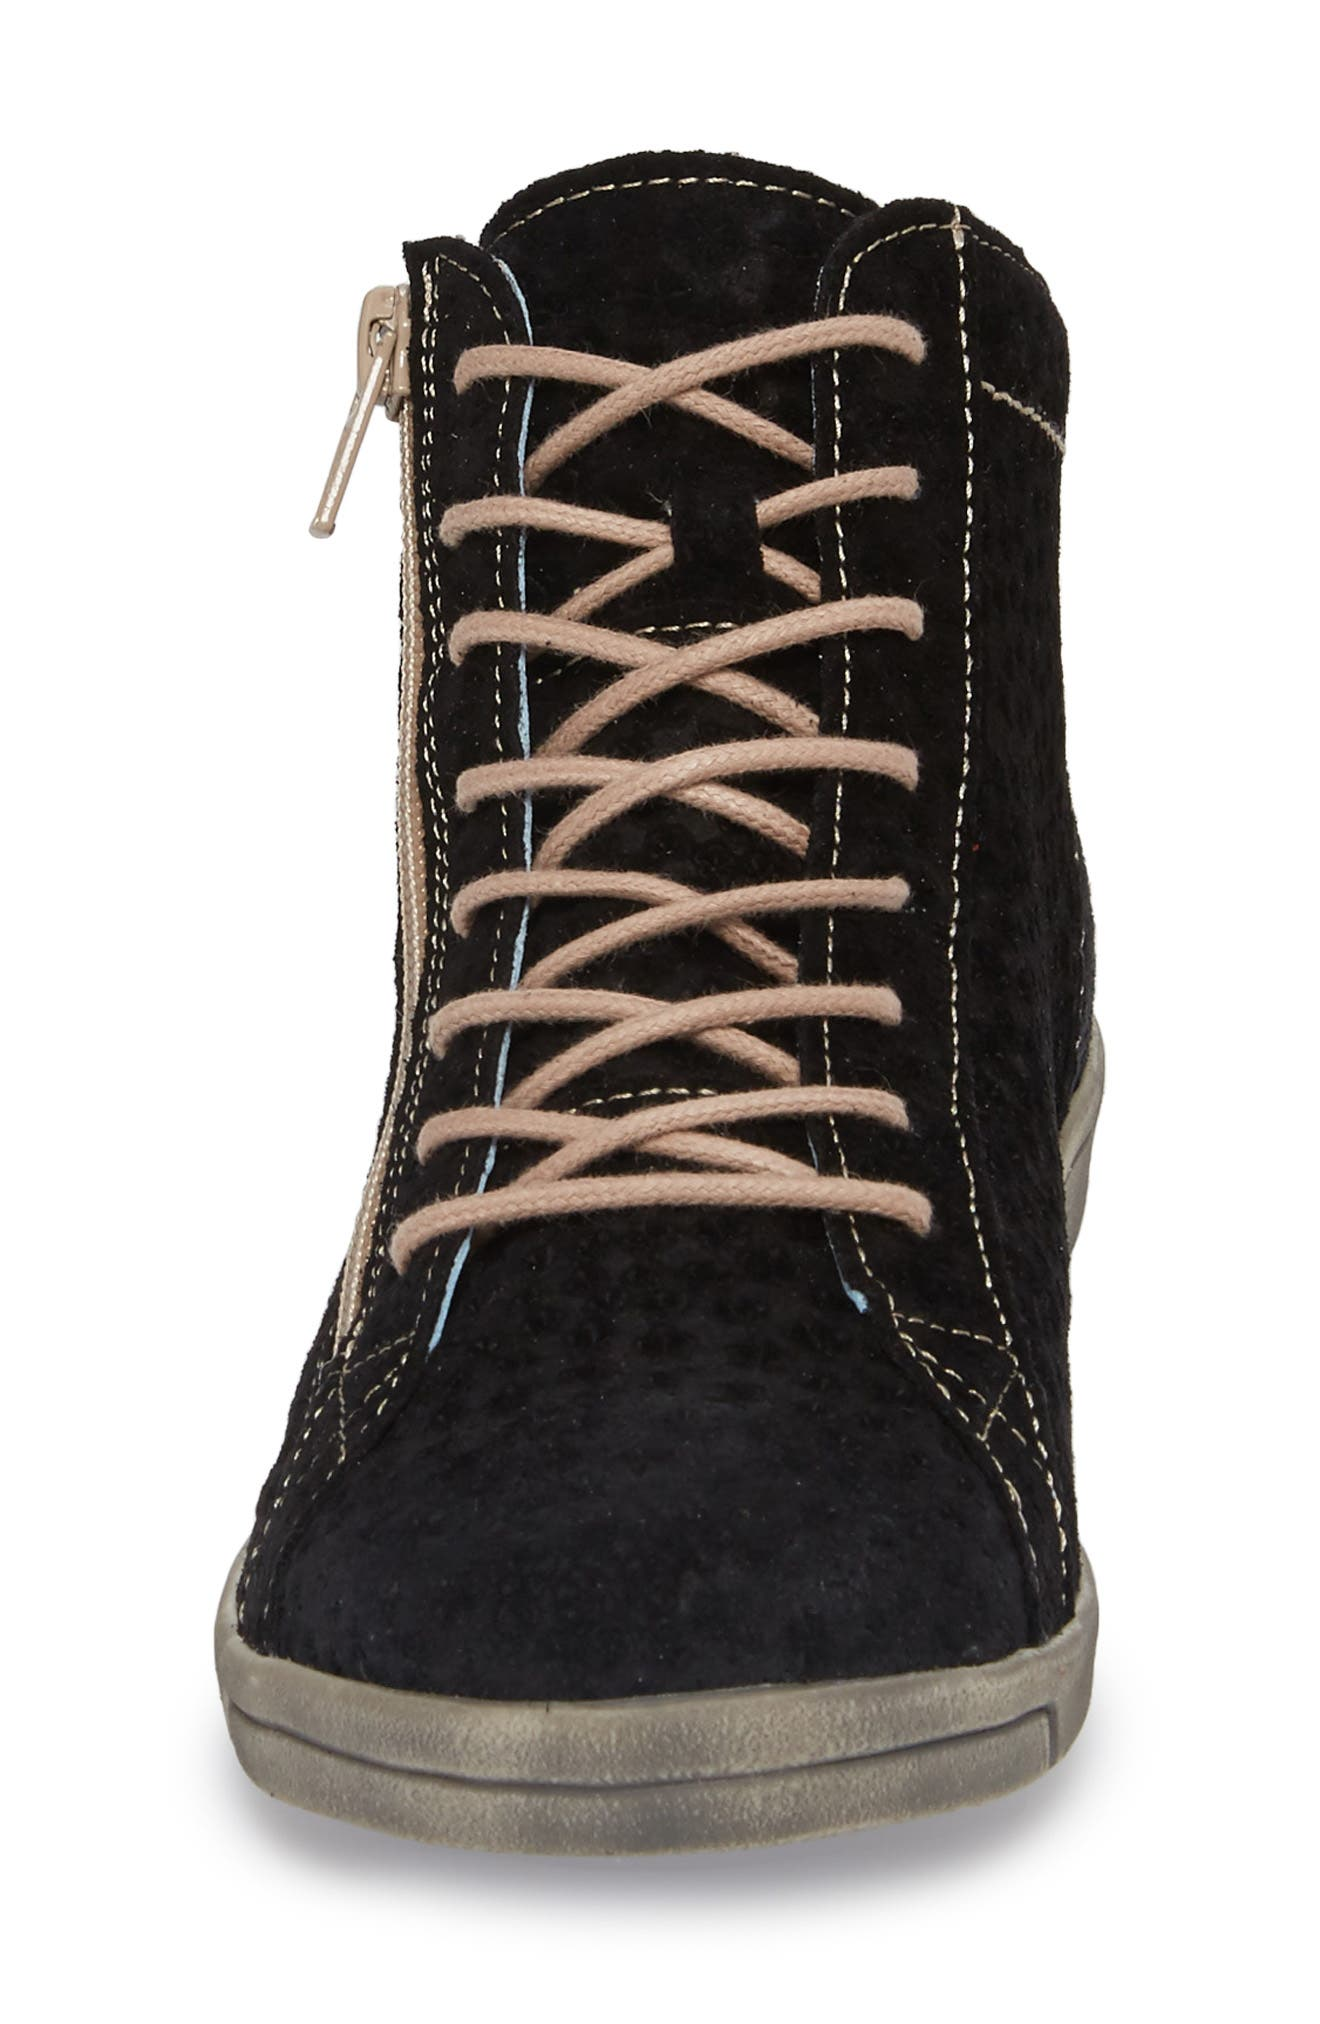 Aika Star Perforated High Top Sneaker,                             Alternate thumbnail 4, color,                             BLACK LEATHER